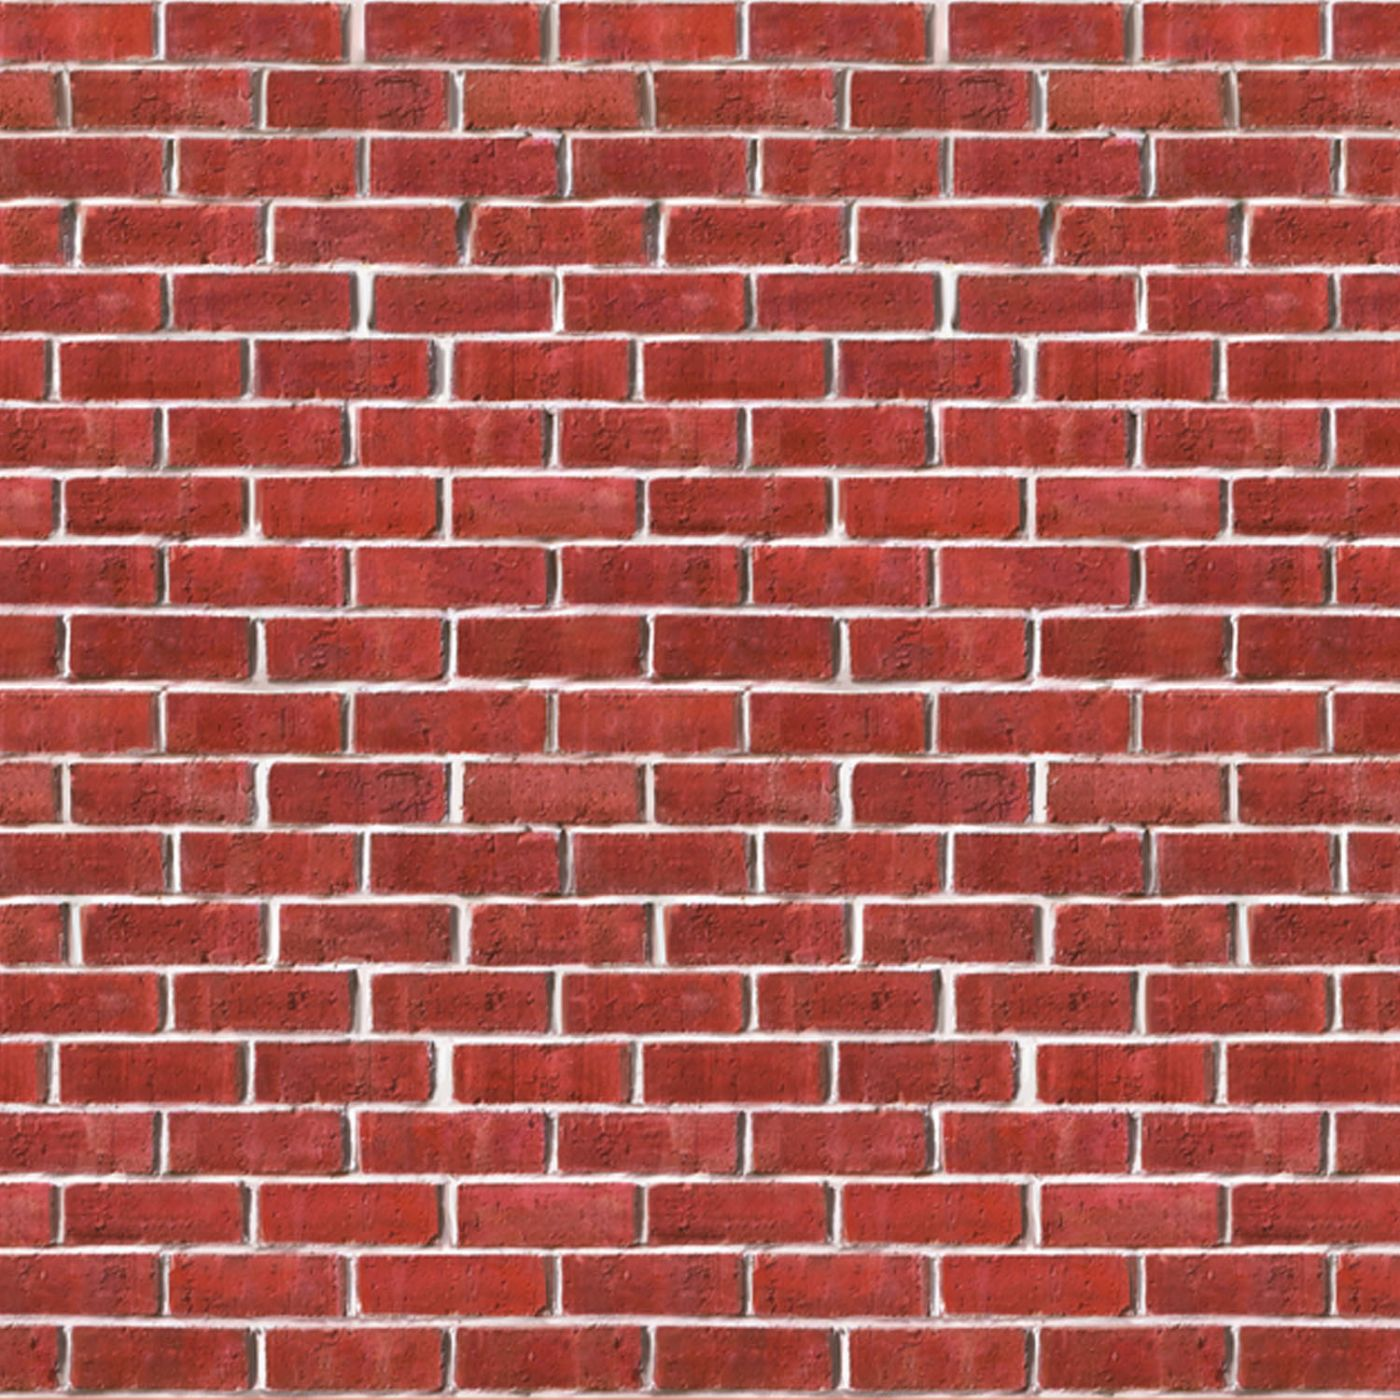 Image of Brick Wall Backdrop (6)